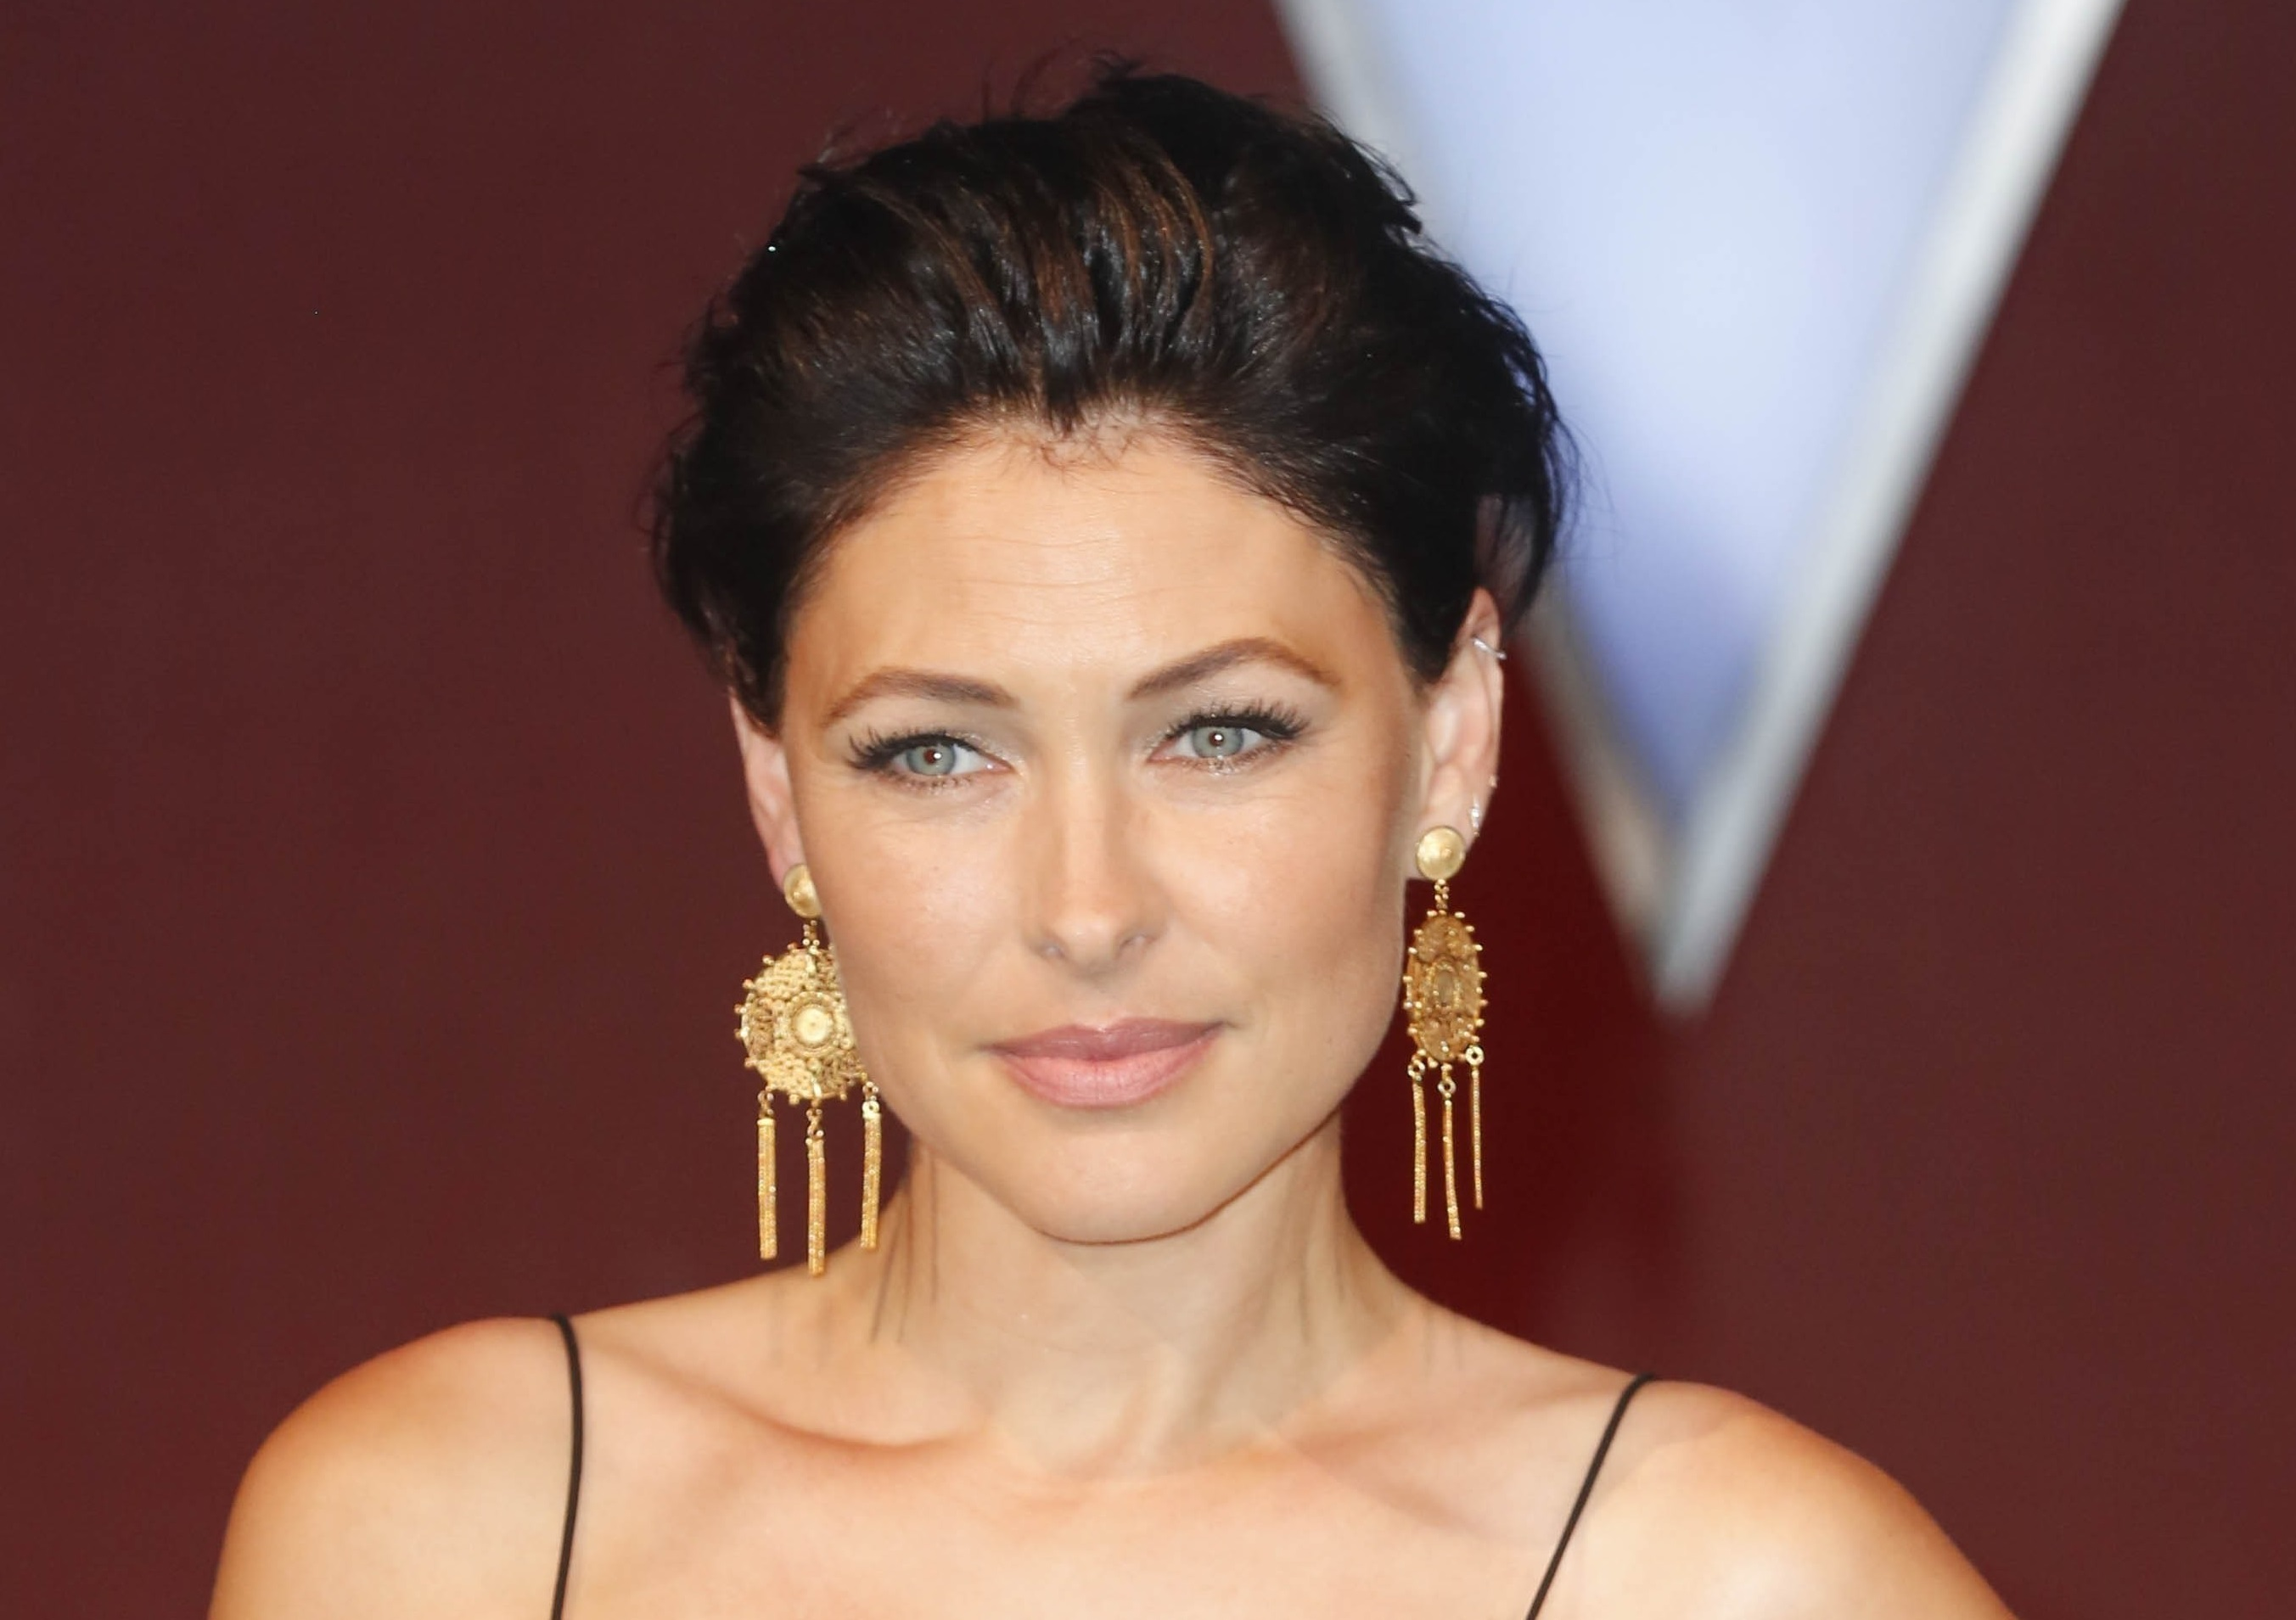 Celebrity Big Brother viewers order Emma Willis to sack her stylist